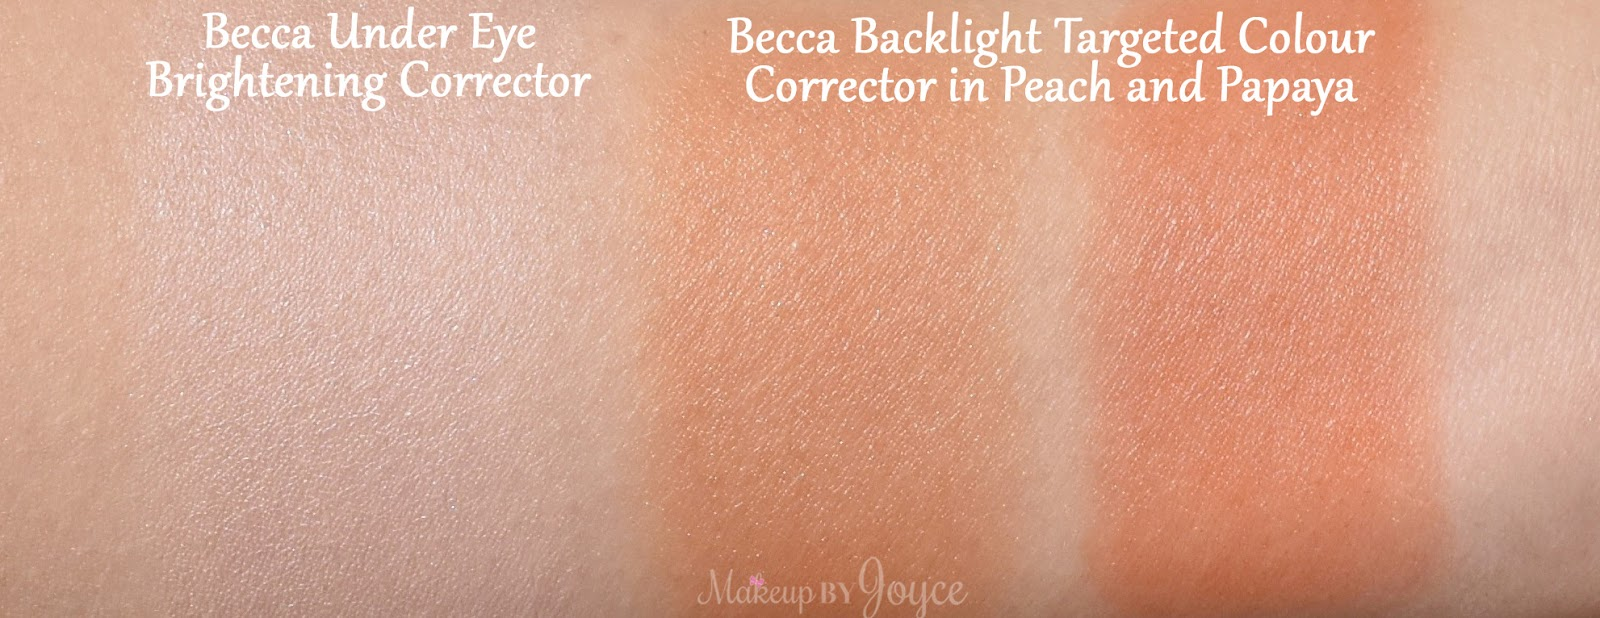 Under Eye Brightening Corrector by BECCA #9